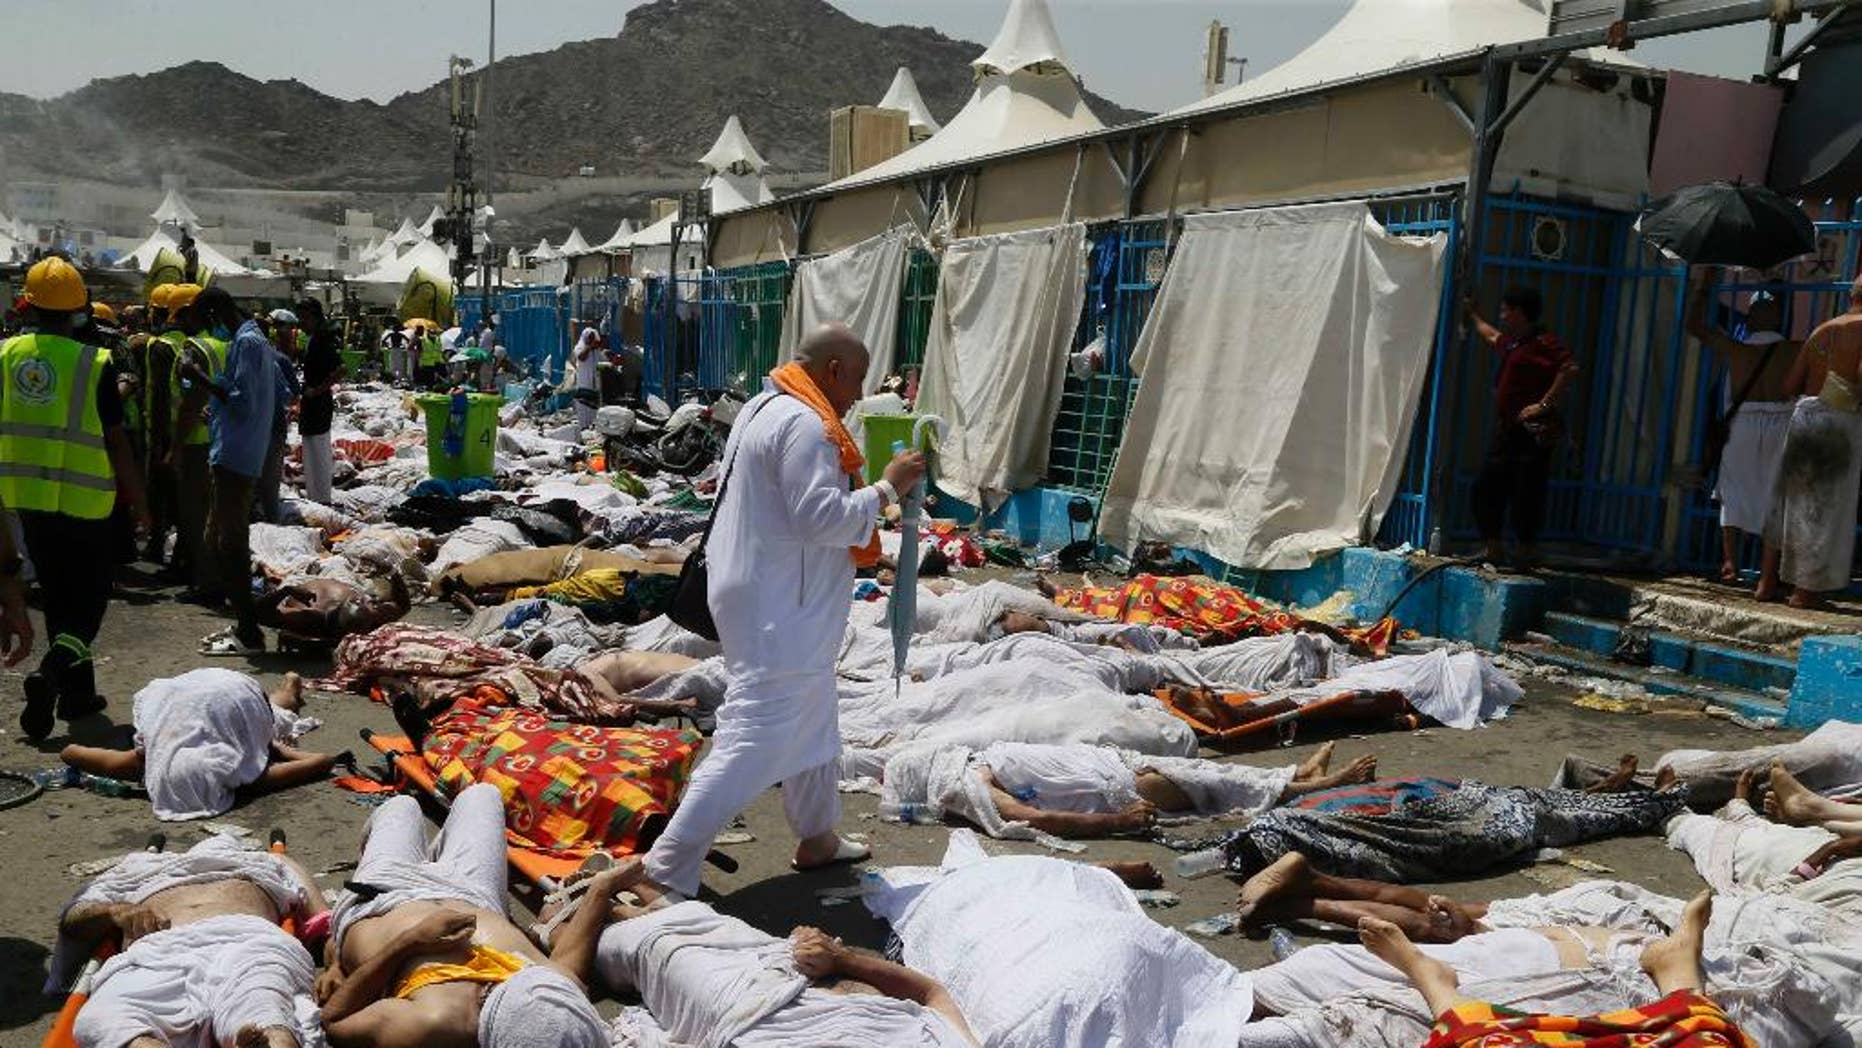 FILE - In this Thursday, Sept. 24, 2015 file photo, a Muslim pilgrim walks through the site where dead bodies are gathered in Mina, Saudi Arabia during the annual hajj pilgrimage. The crush and stampede that struck the hajj last month in Saudi Arabia killed at least 2,121 pilgrims, a new Associated Press tally showed Monday, after officials in the kingdom met to discuss the tragedy. (AP Photo, File)